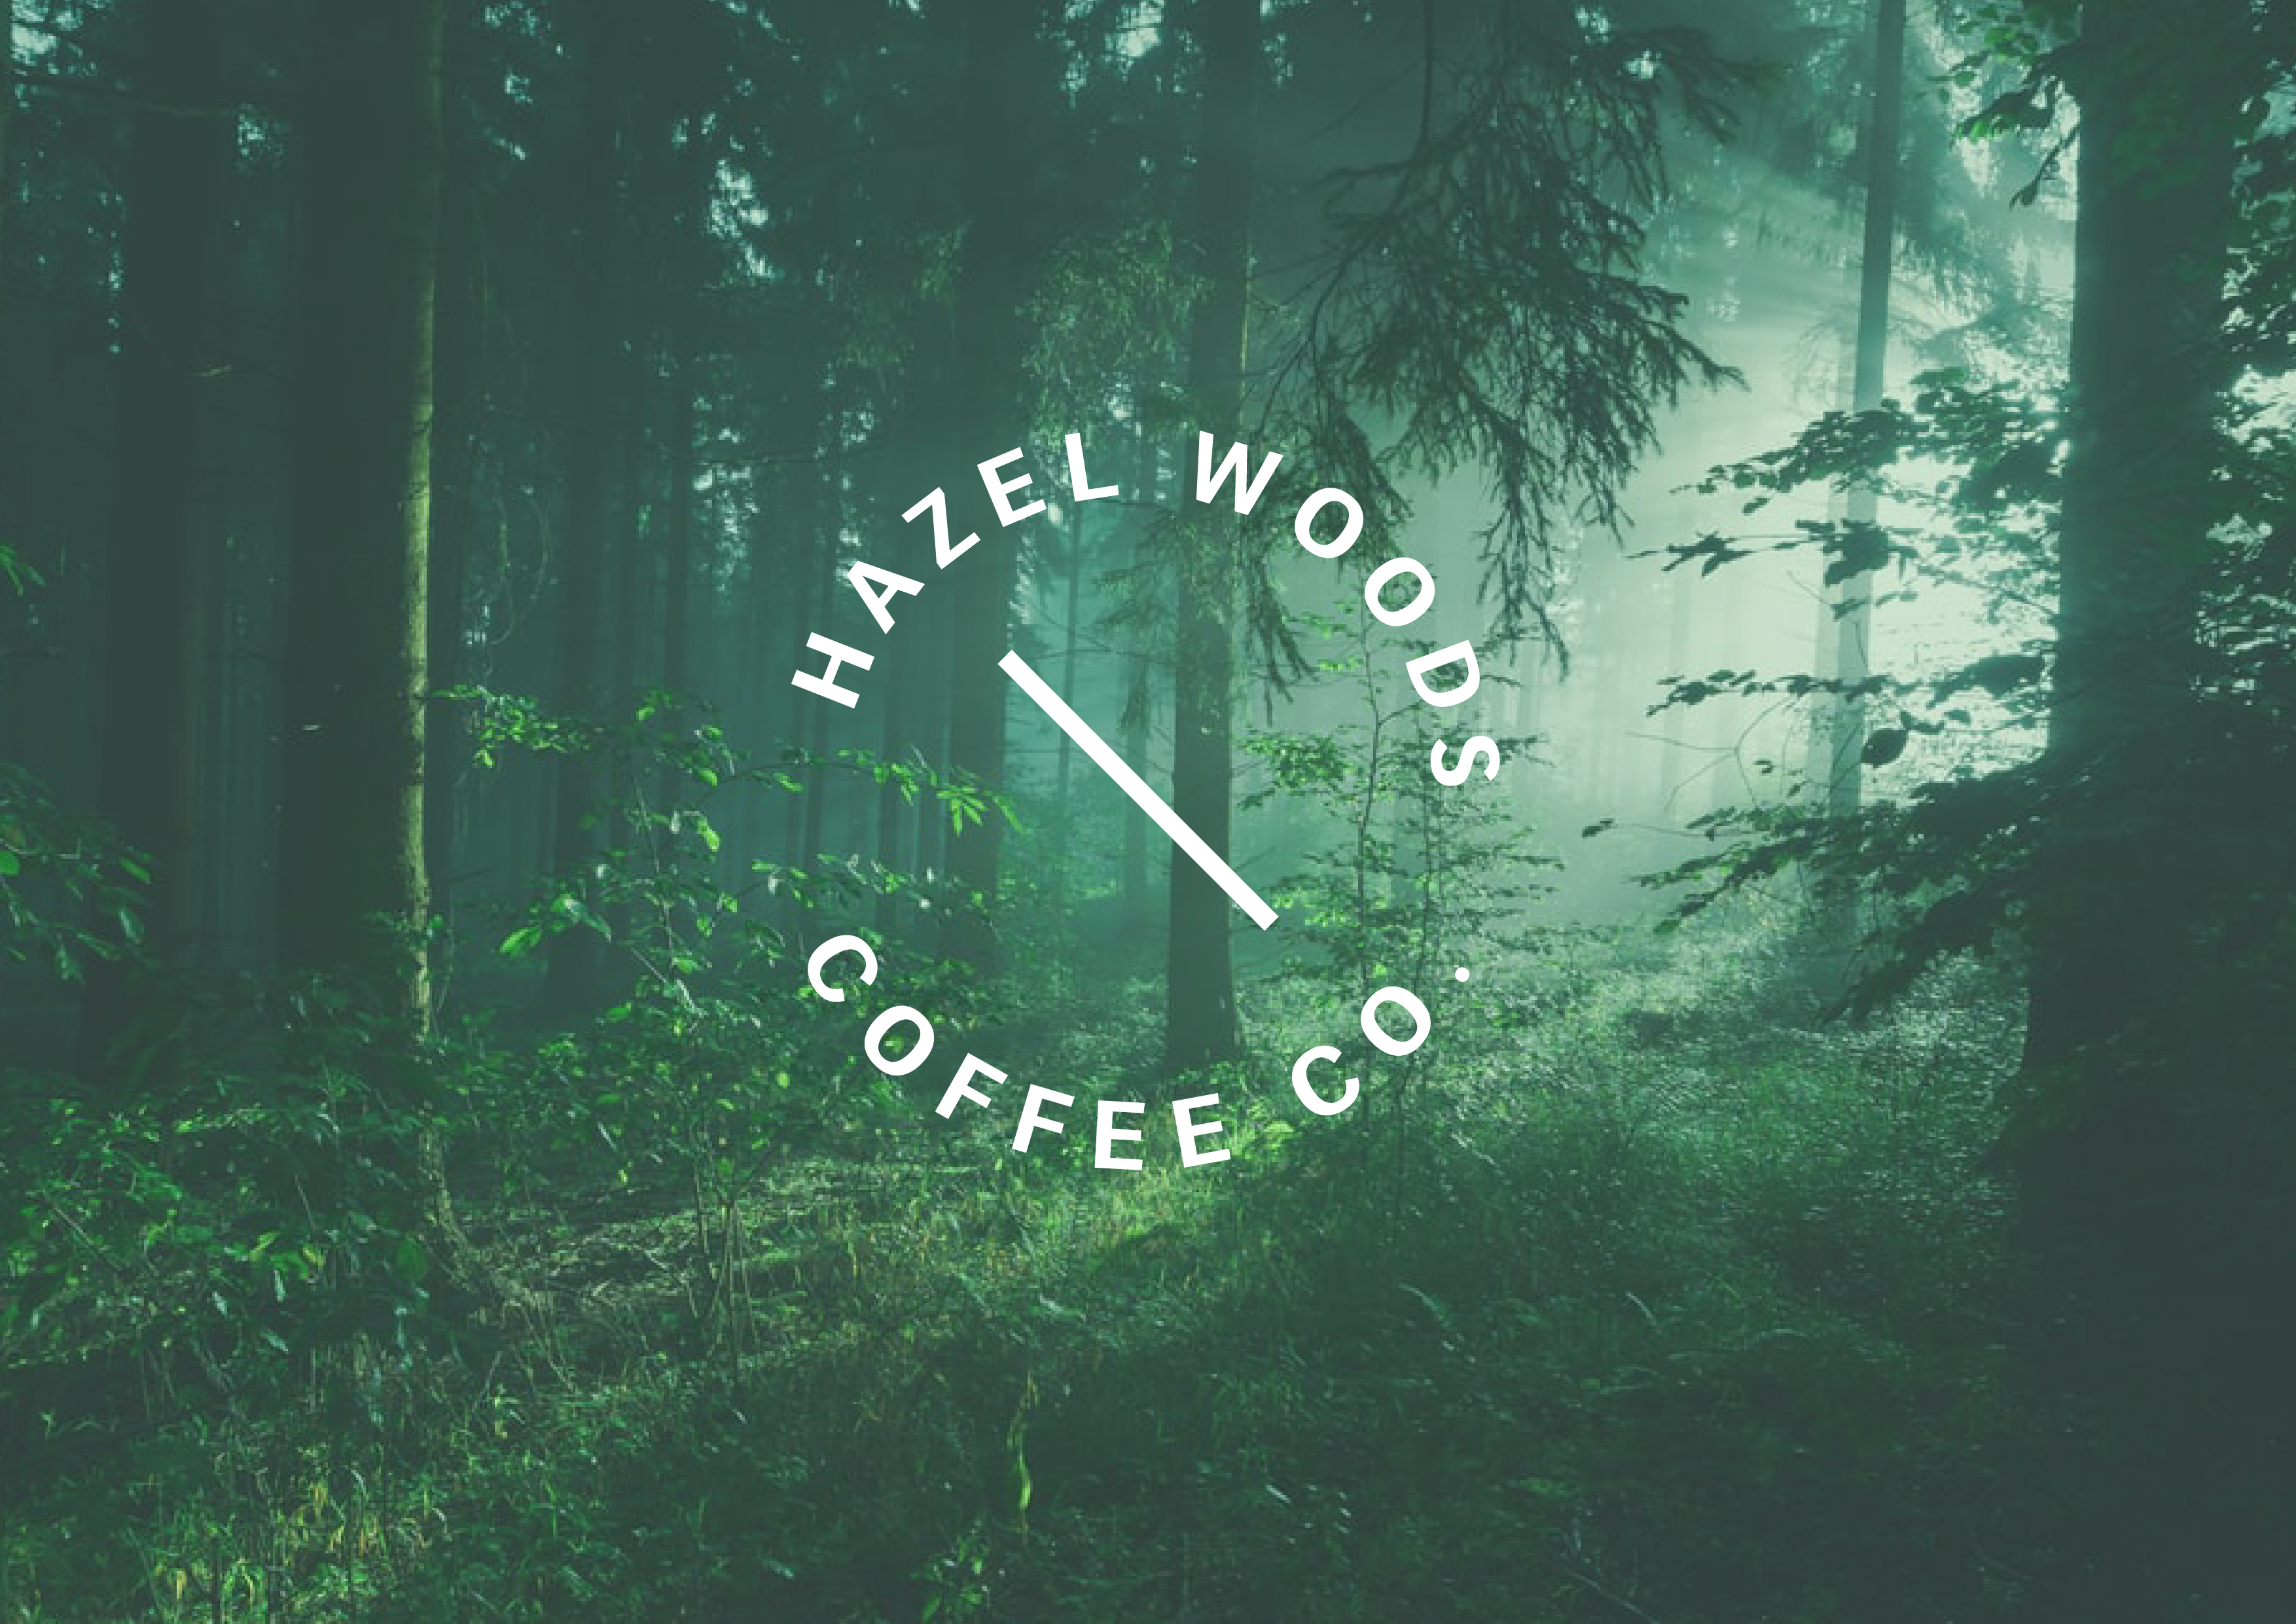 HW Forest